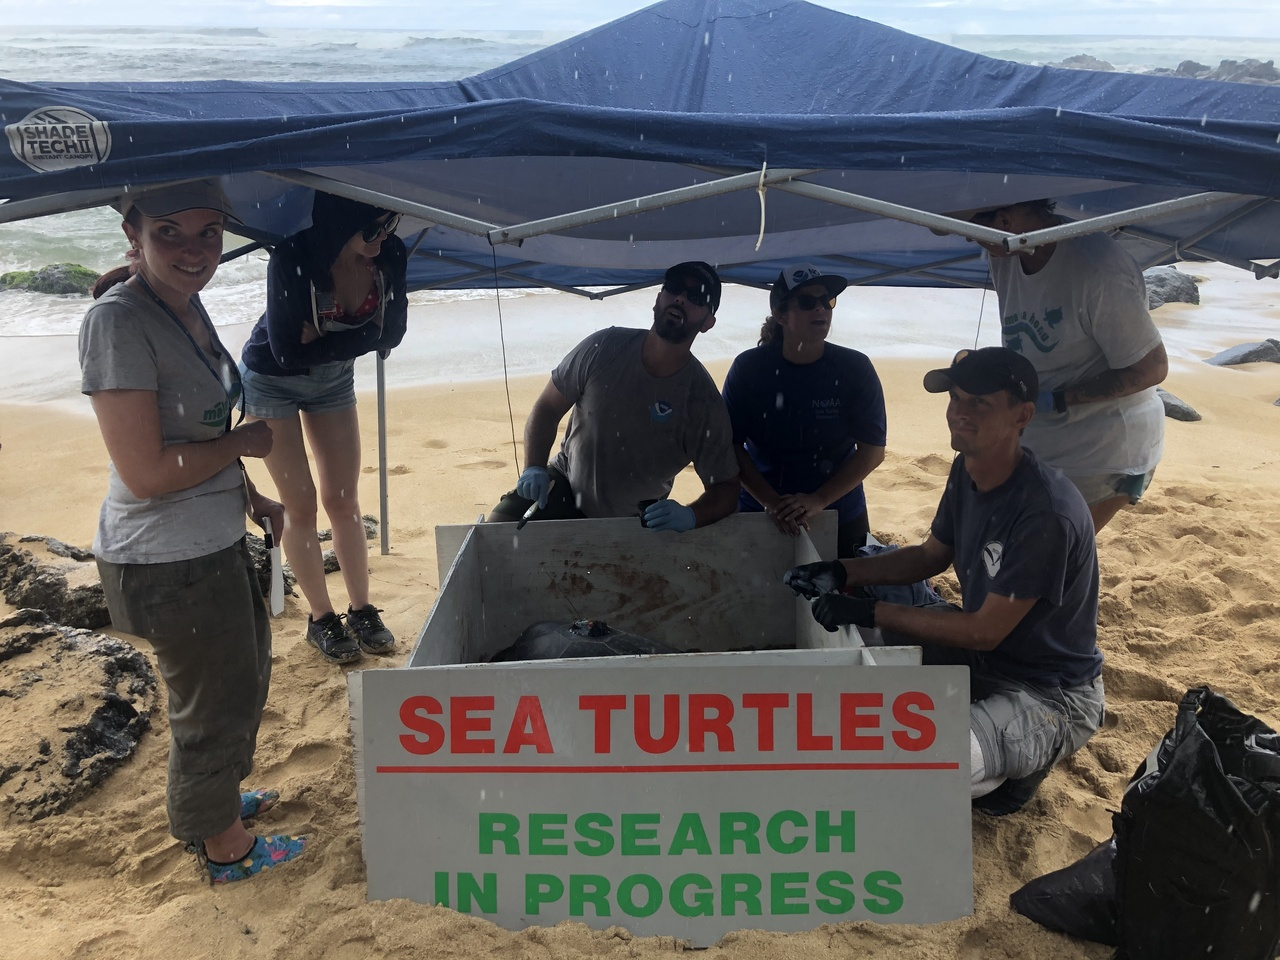 Tent on beach with scientists and turtle underneath.